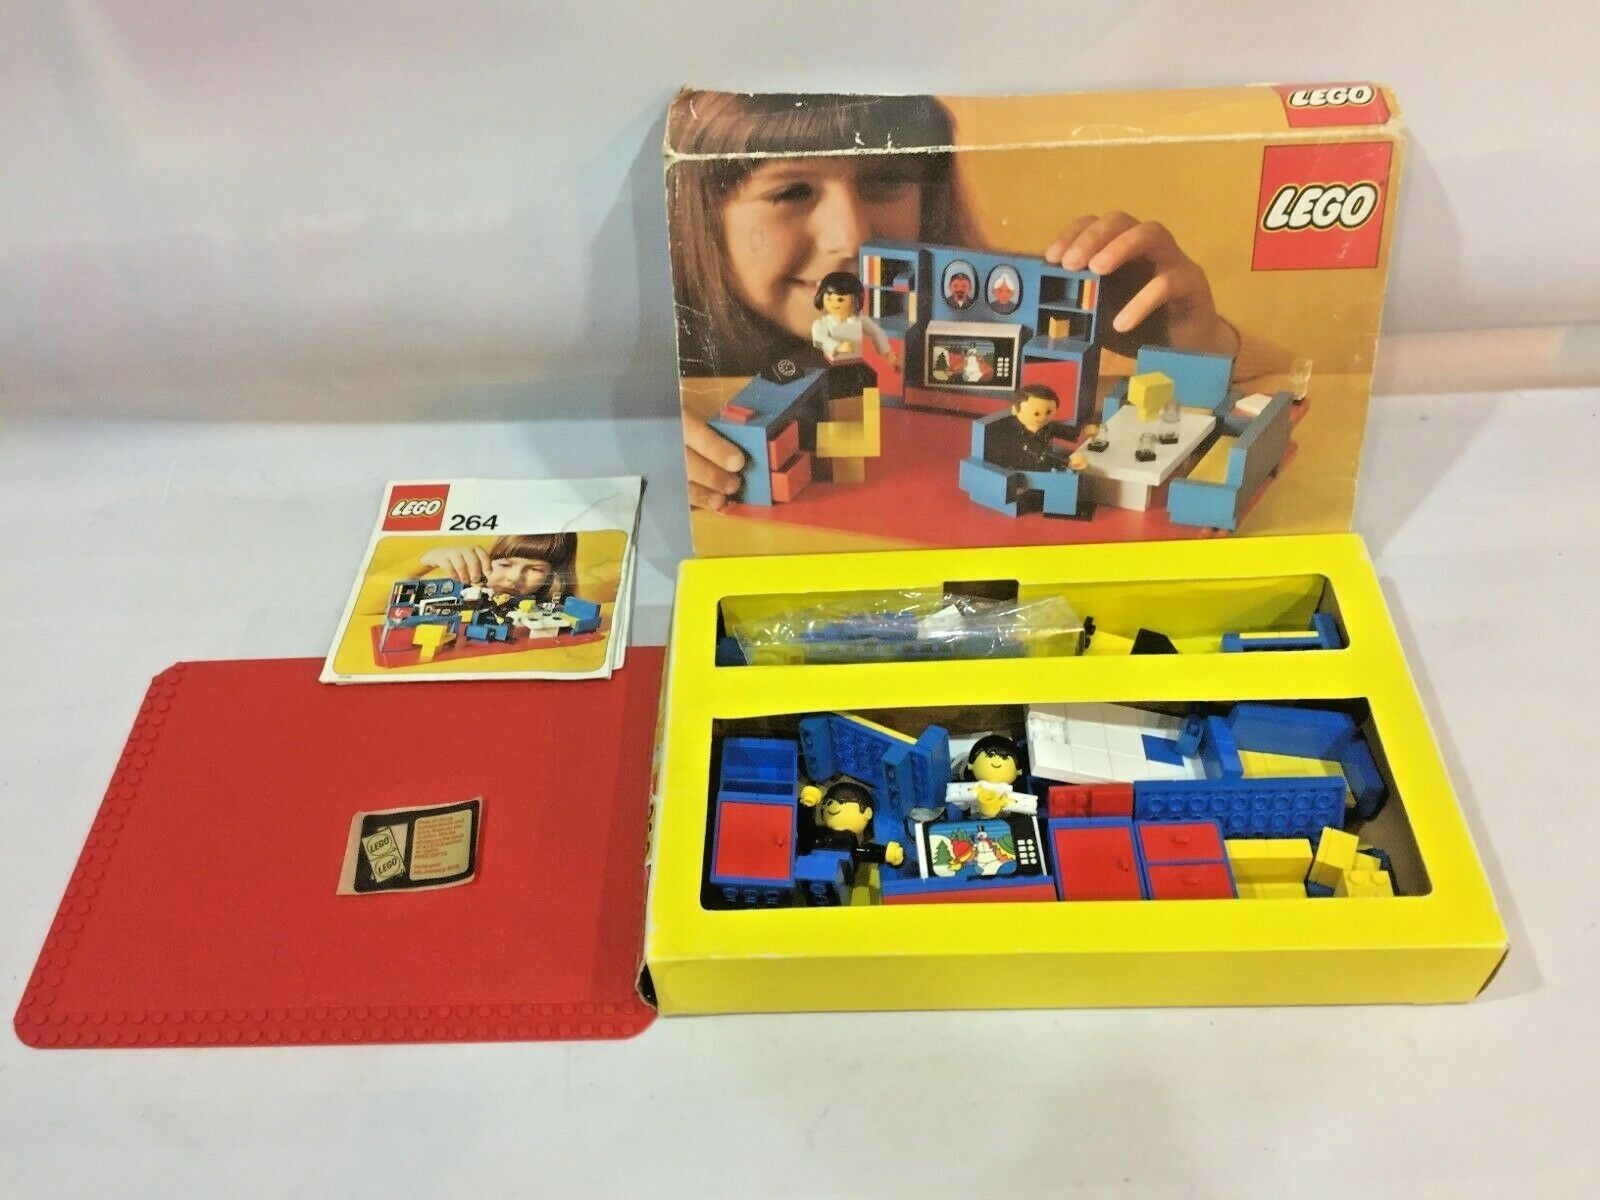 Vintage 1970s Lego Boxed Set  264 264 264  Living Room With 2 Figures da10fb